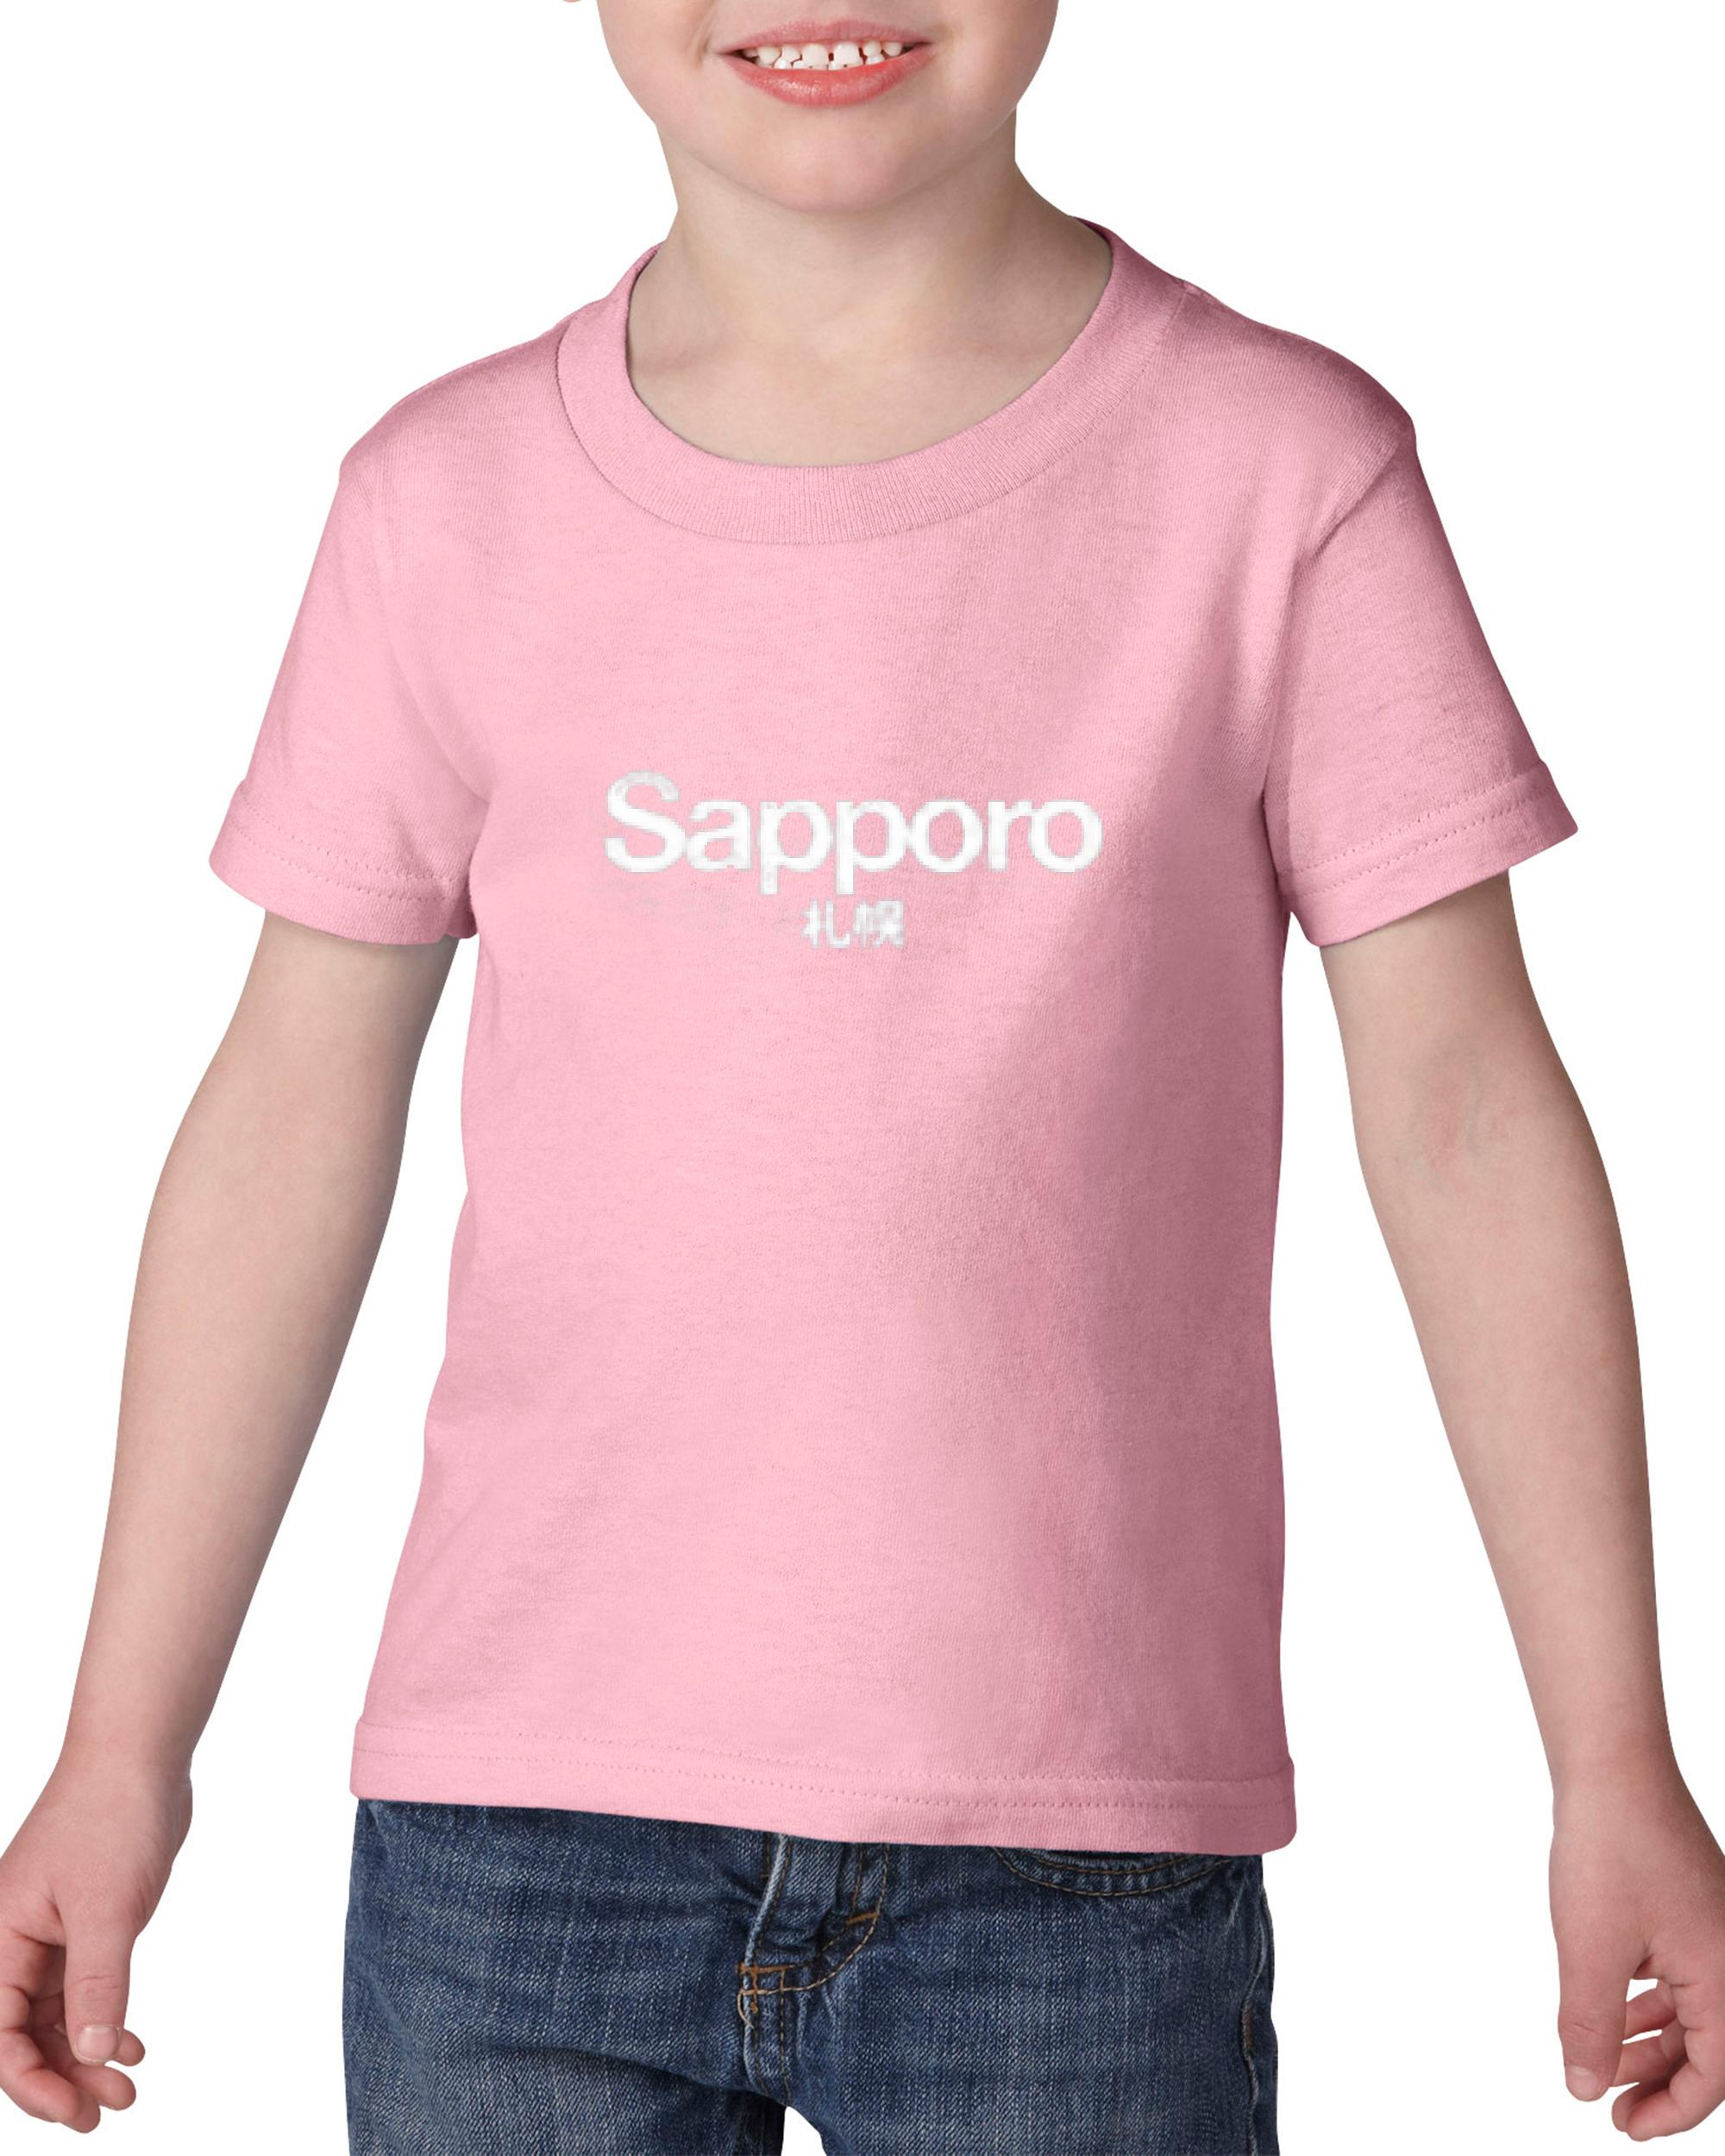 Artix Sapporo Map Japan Flag What to do in Japan? Tour Guide Travel to Japan Tokyo Osaka Heavy Cotton Toddler Kids T-Shirt Tee Clothing